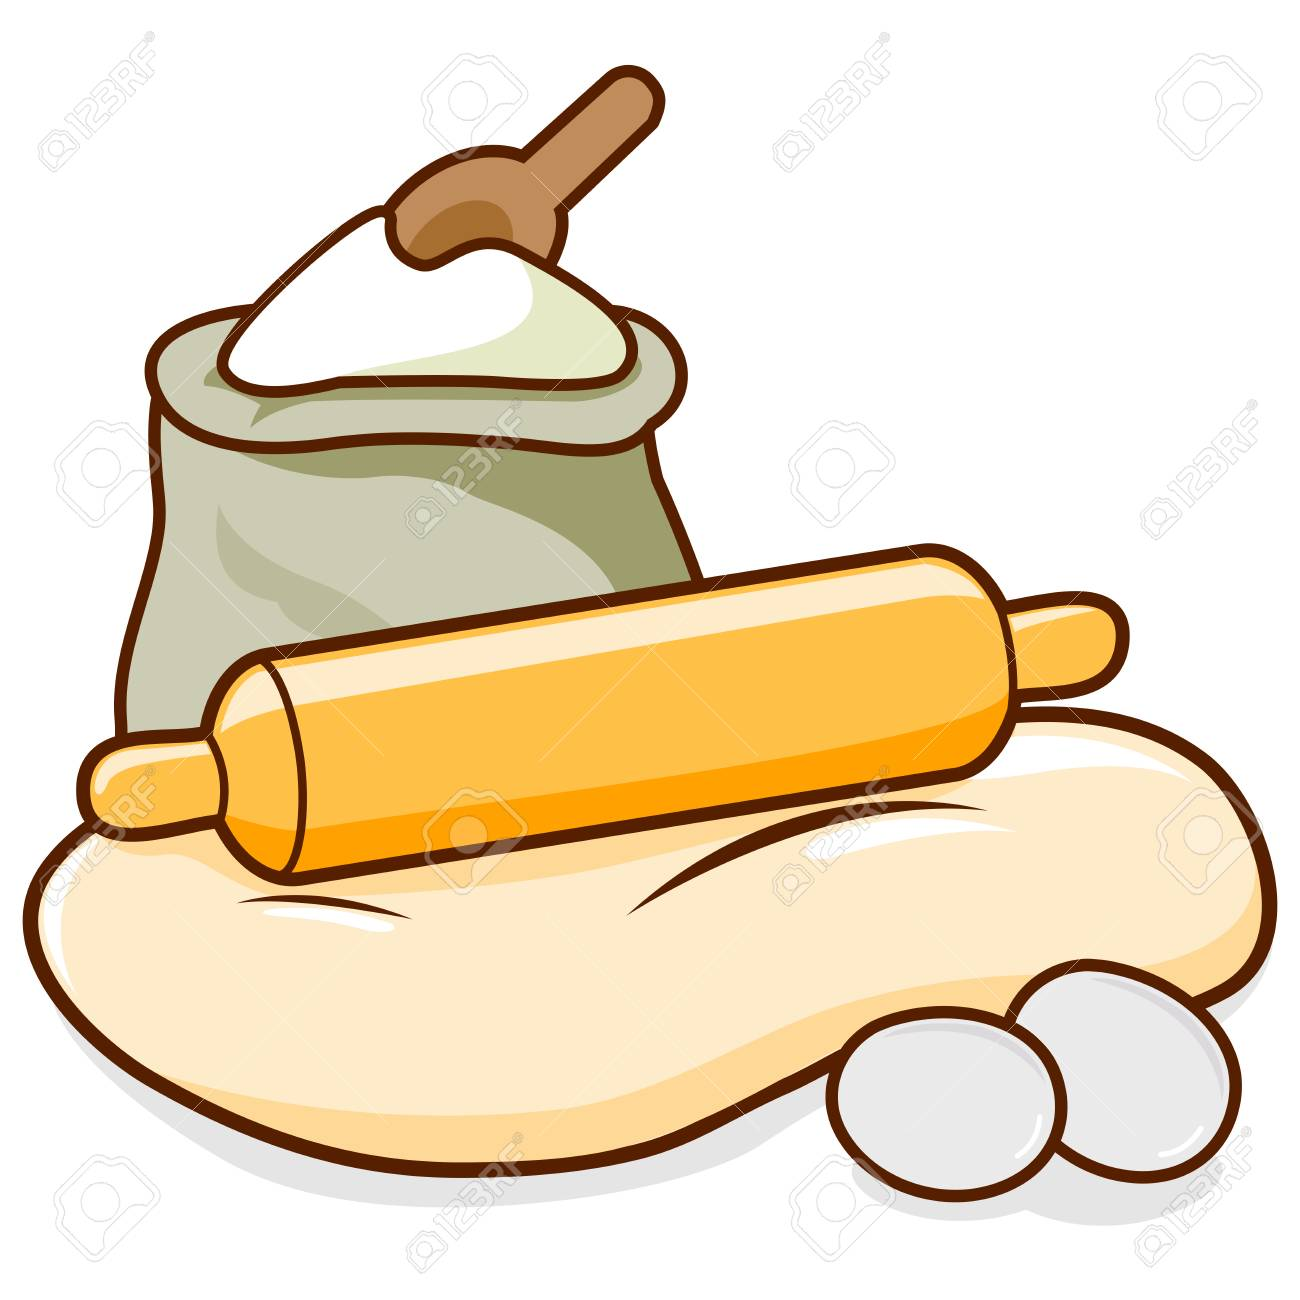 97 Rolling Pin free clipart.